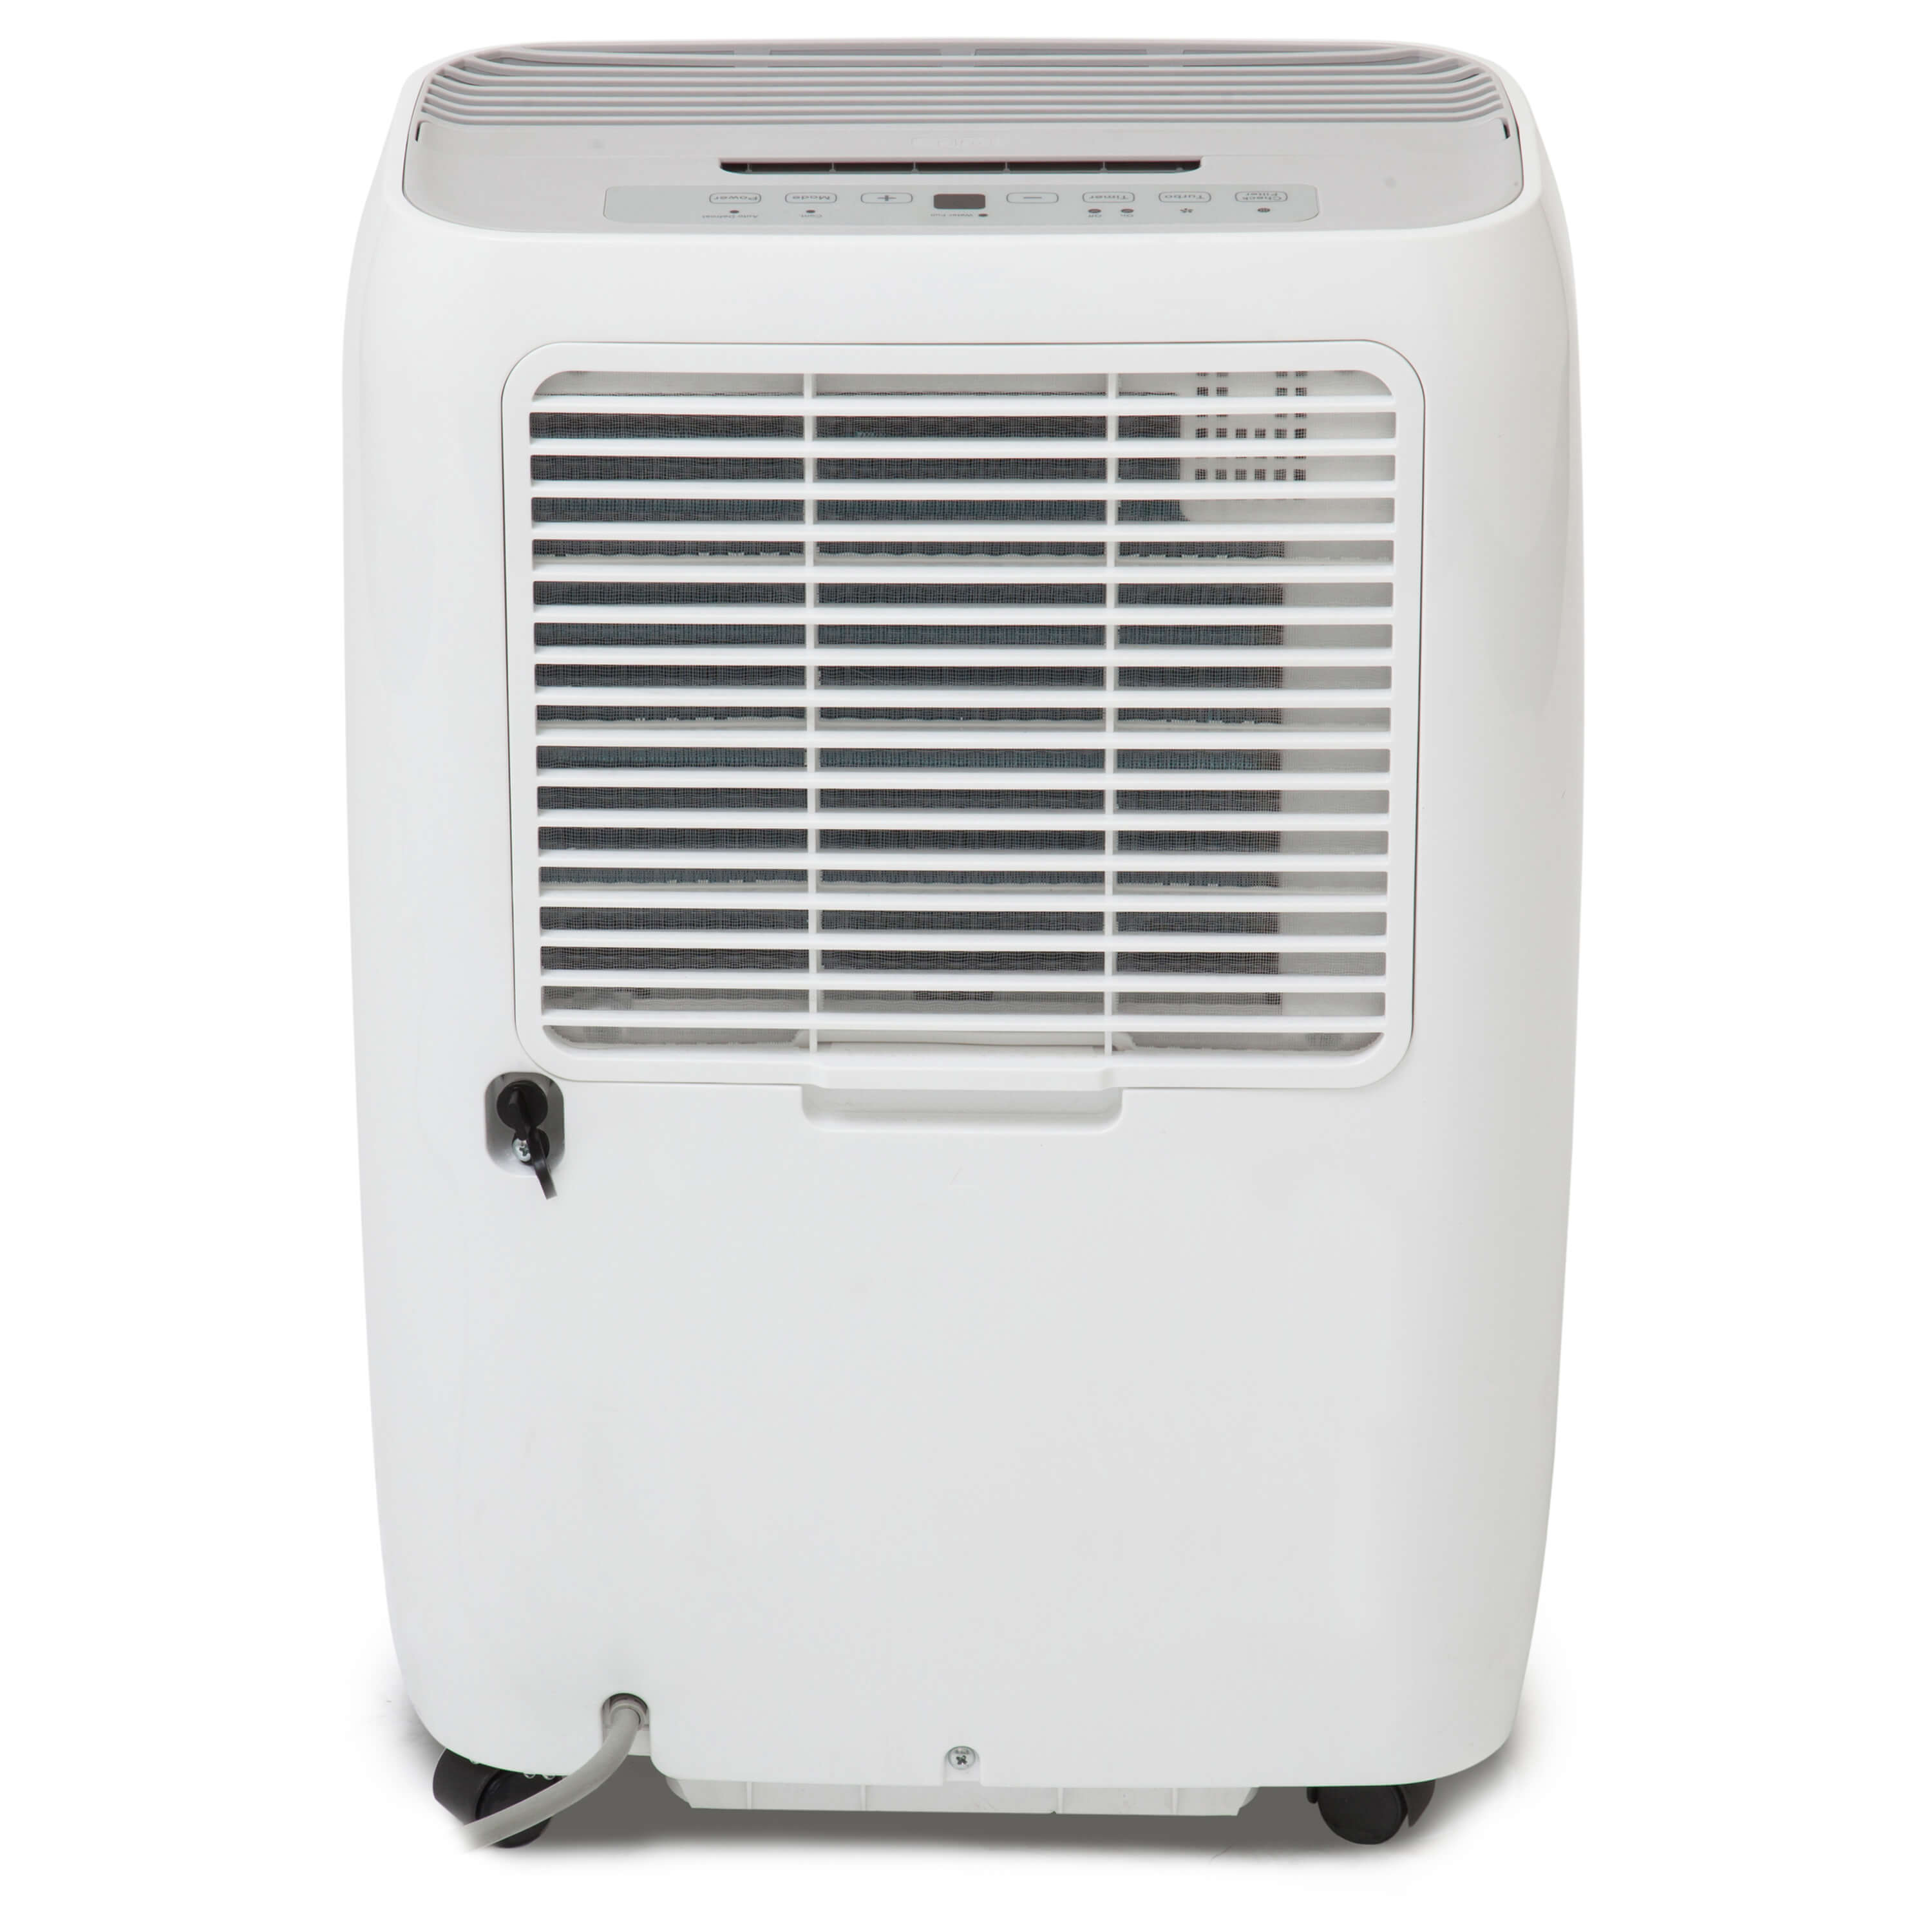 energy star dehumidifier instructions